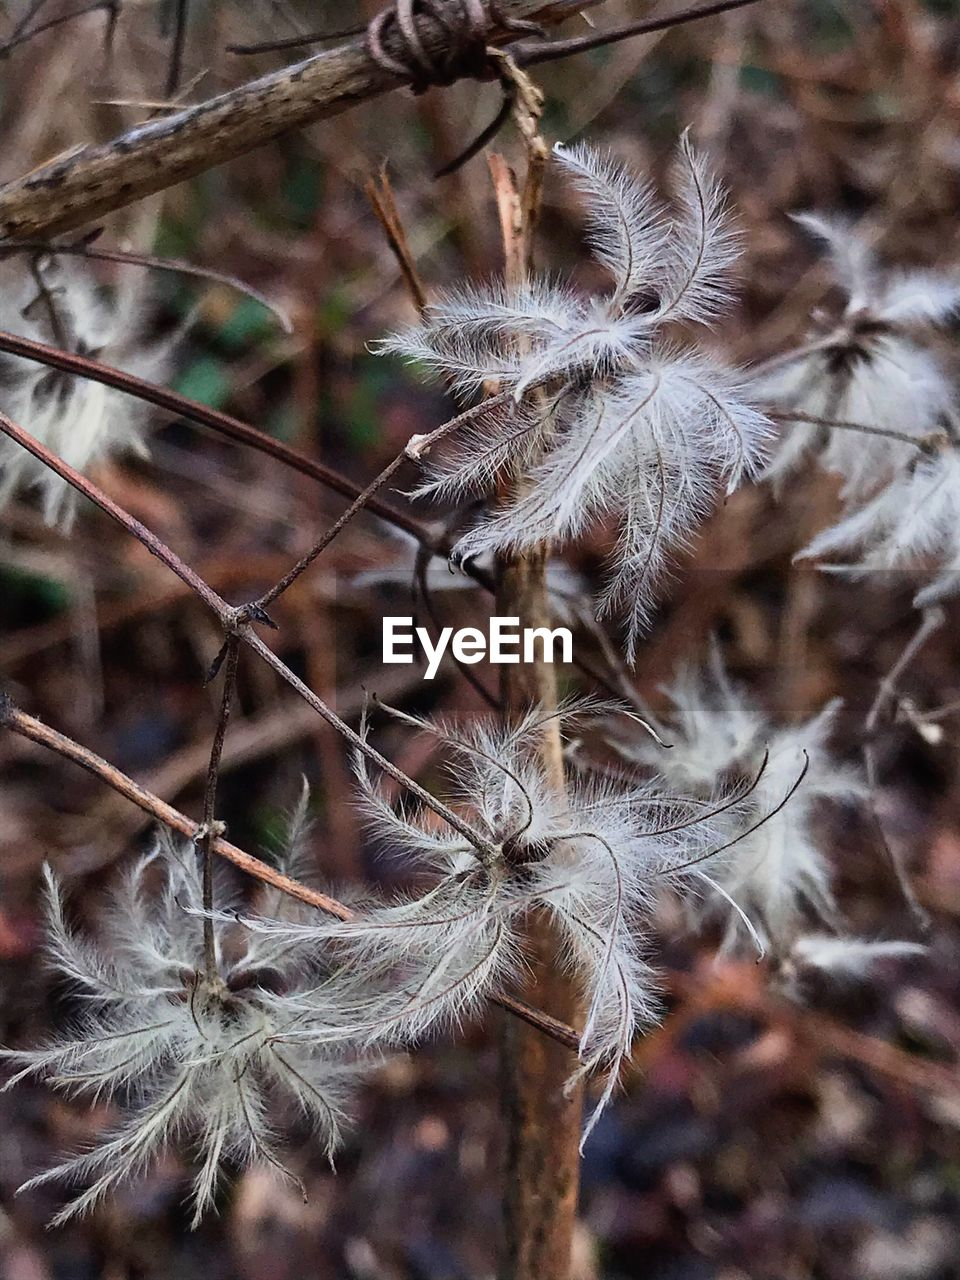 plant, fragility, vulnerability, focus on foreground, close-up, flower, beauty in nature, growth, flowering plant, no people, nature, day, freshness, dandelion, softness, seed, selective focus, tranquility, dry, outdoors, dandelion seed, flower head, dead plant, wilted plant, dried